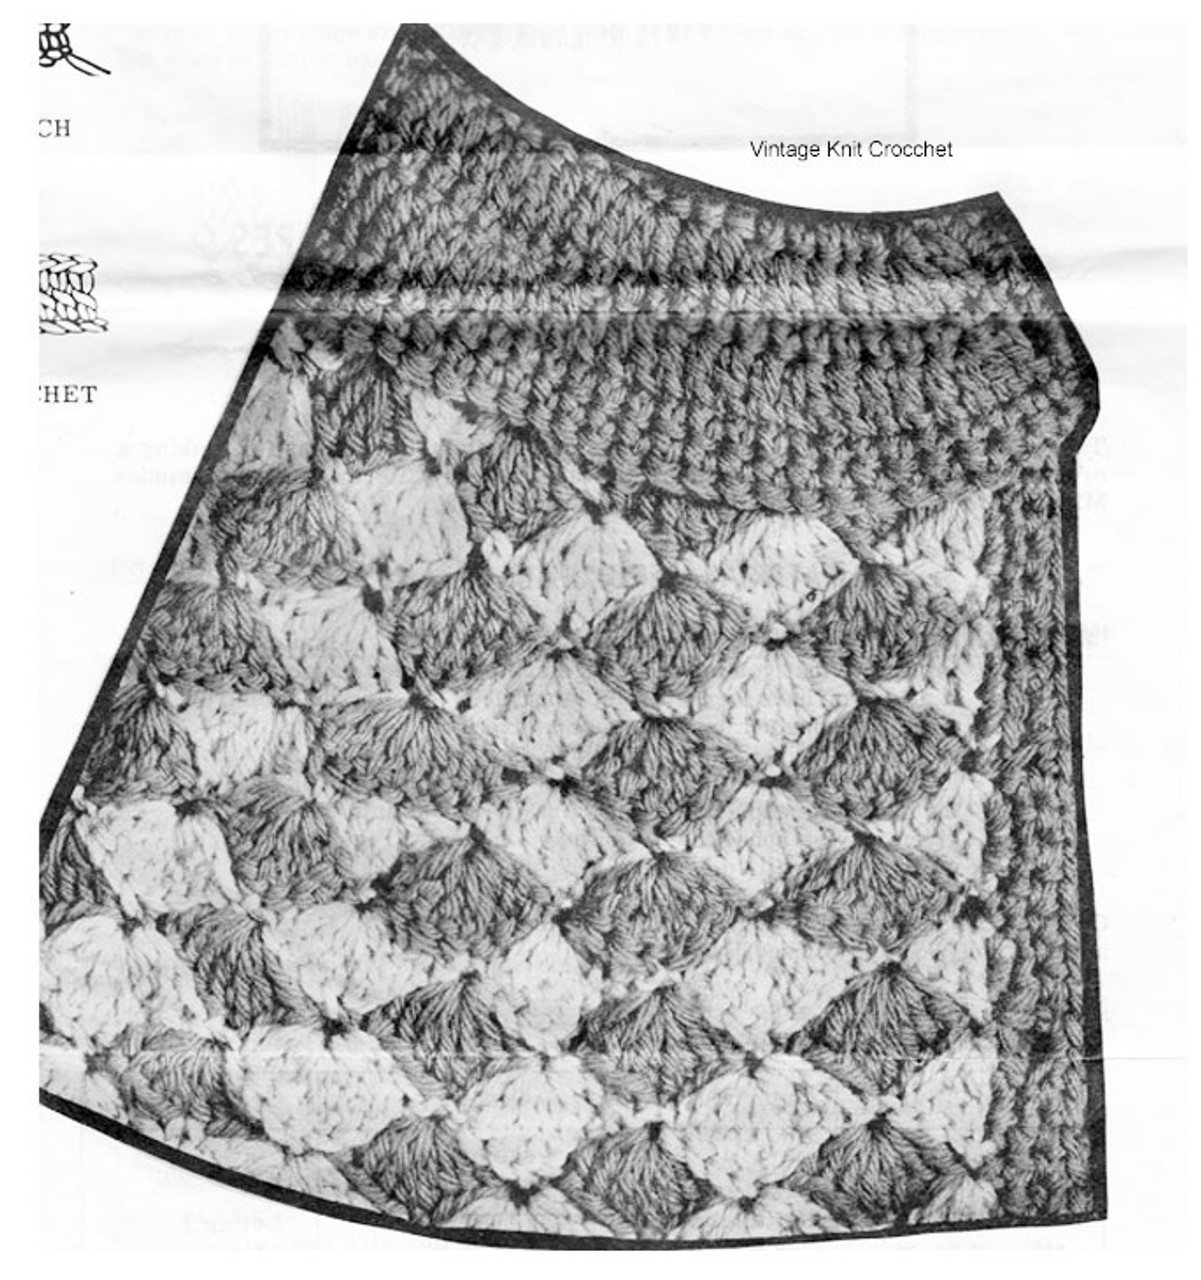 Crochet Shell Stitch Illustration for Capes pattern 7393